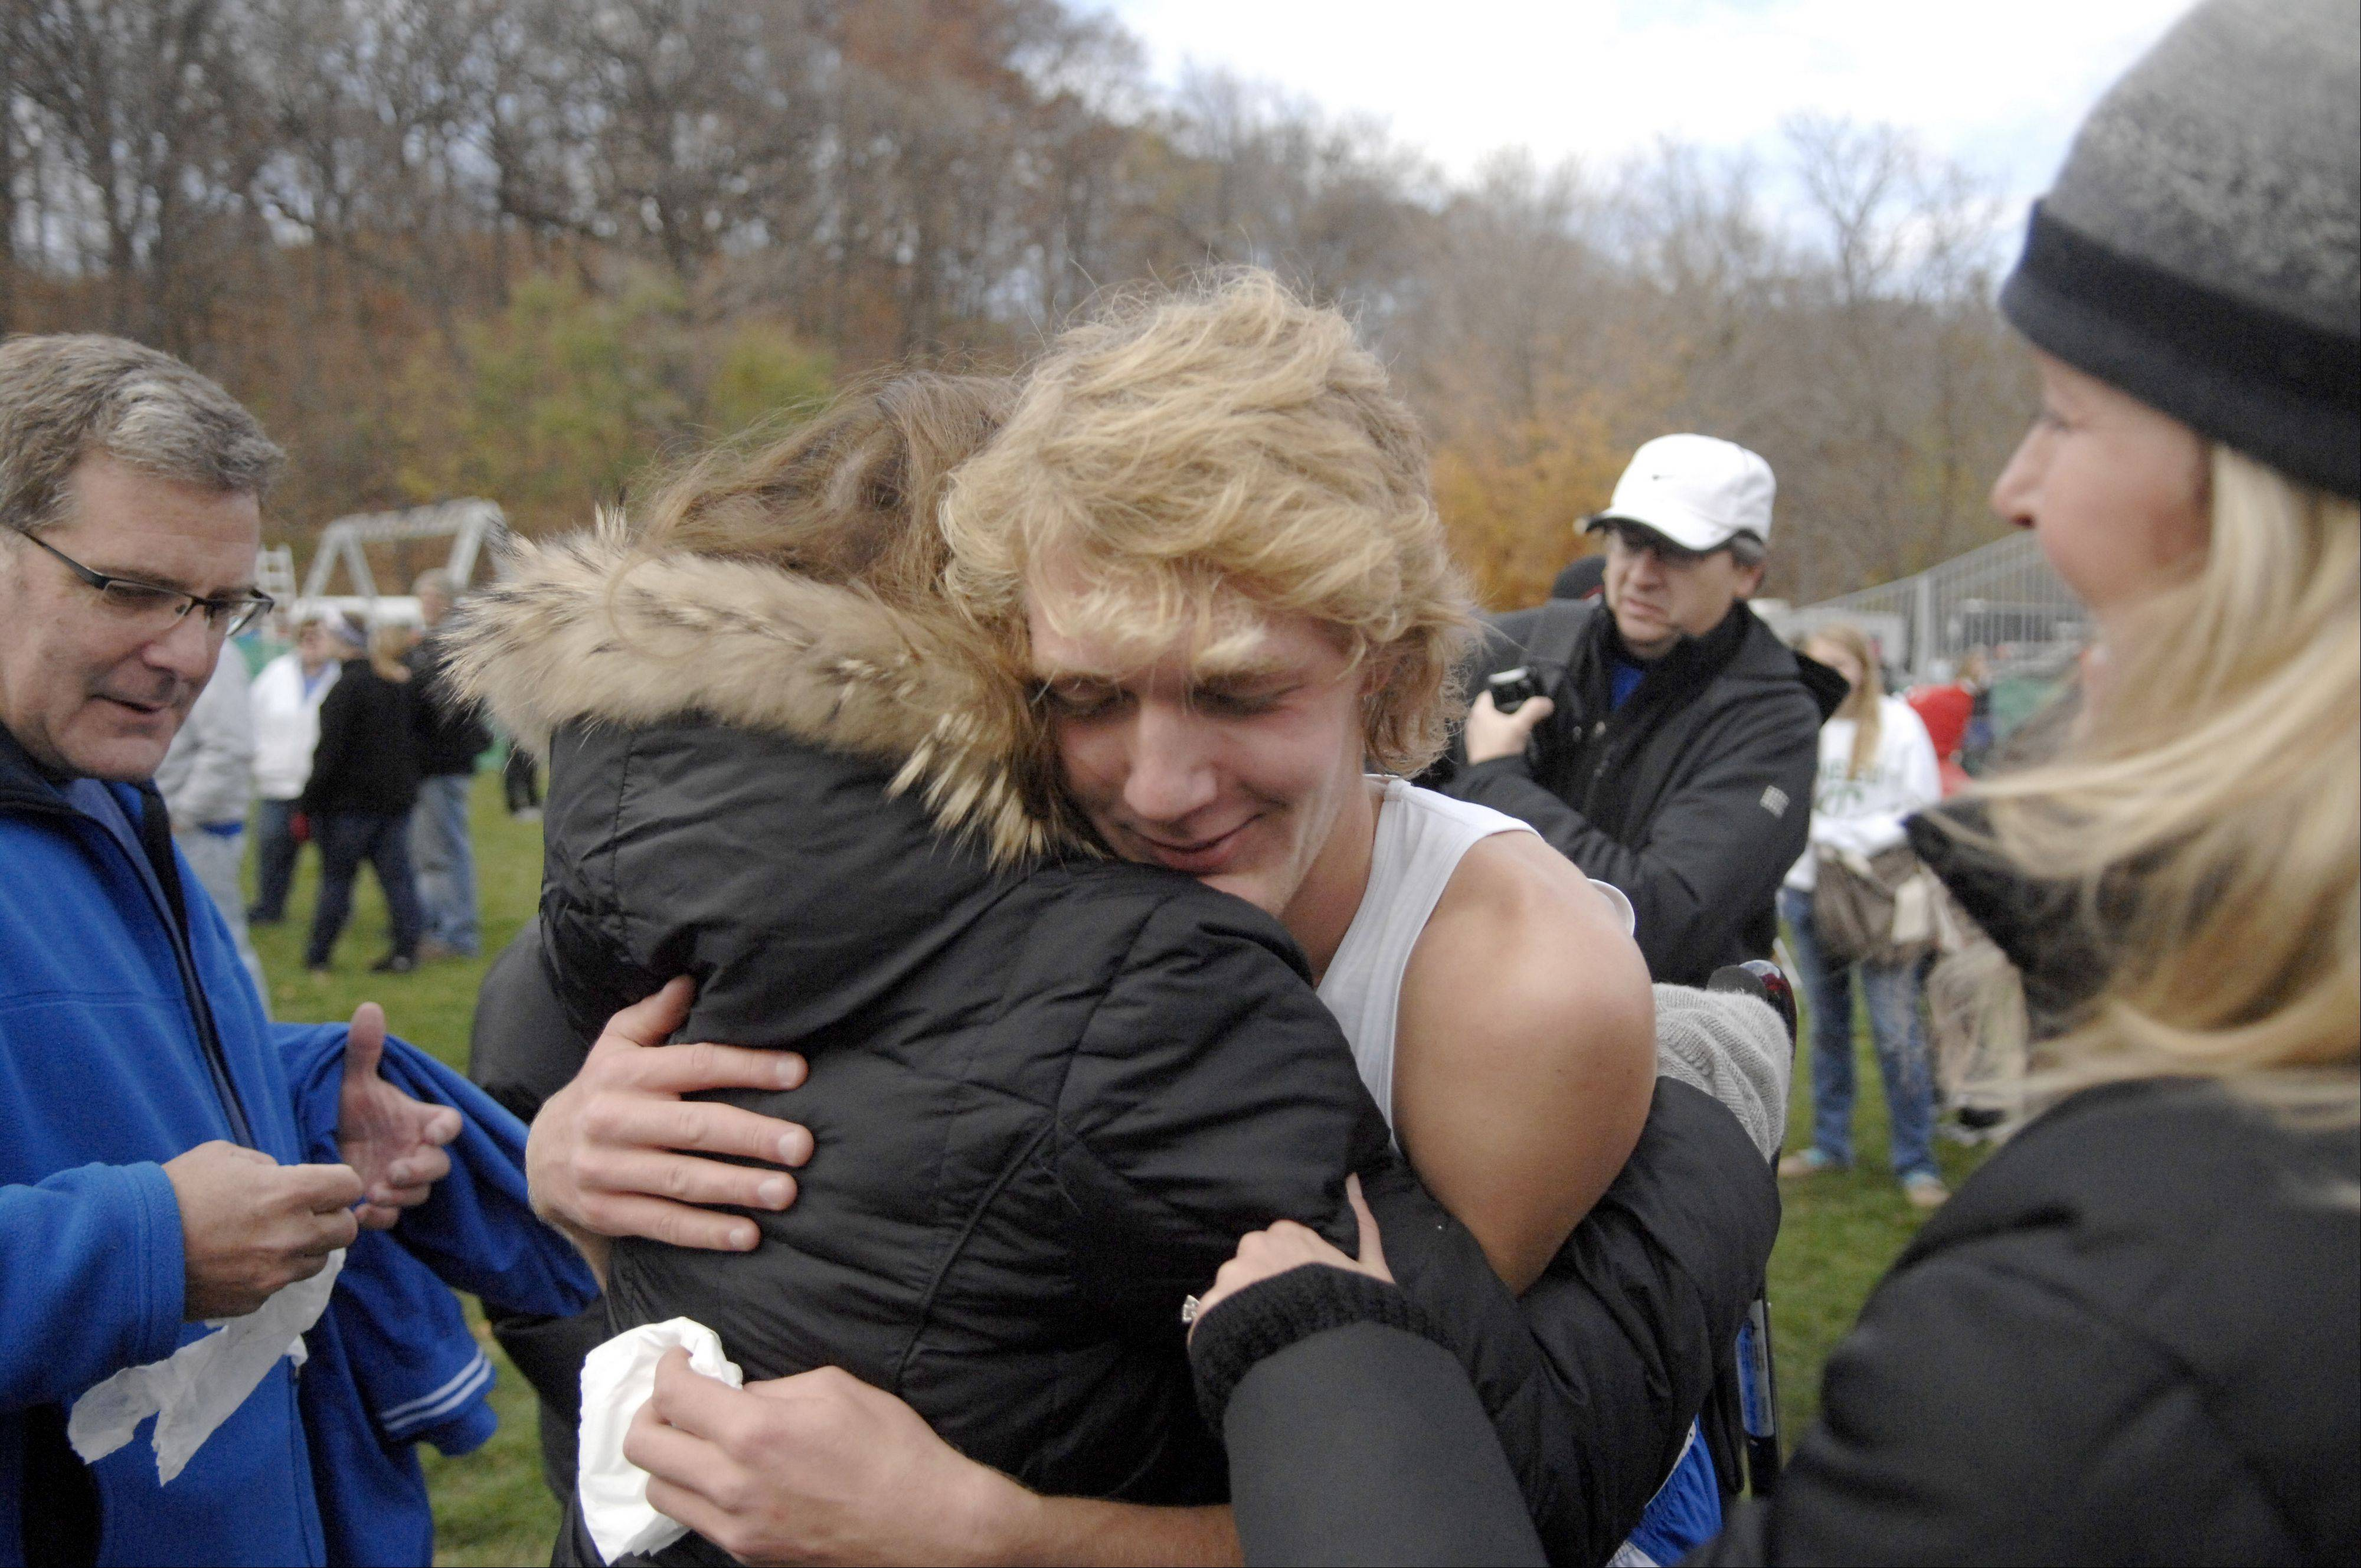 Glenbard South's John Wold gets a hug from grandmother Michele Mider of Chicago after winning the state cross country 2A final in Peoria on Saturday, November 3.